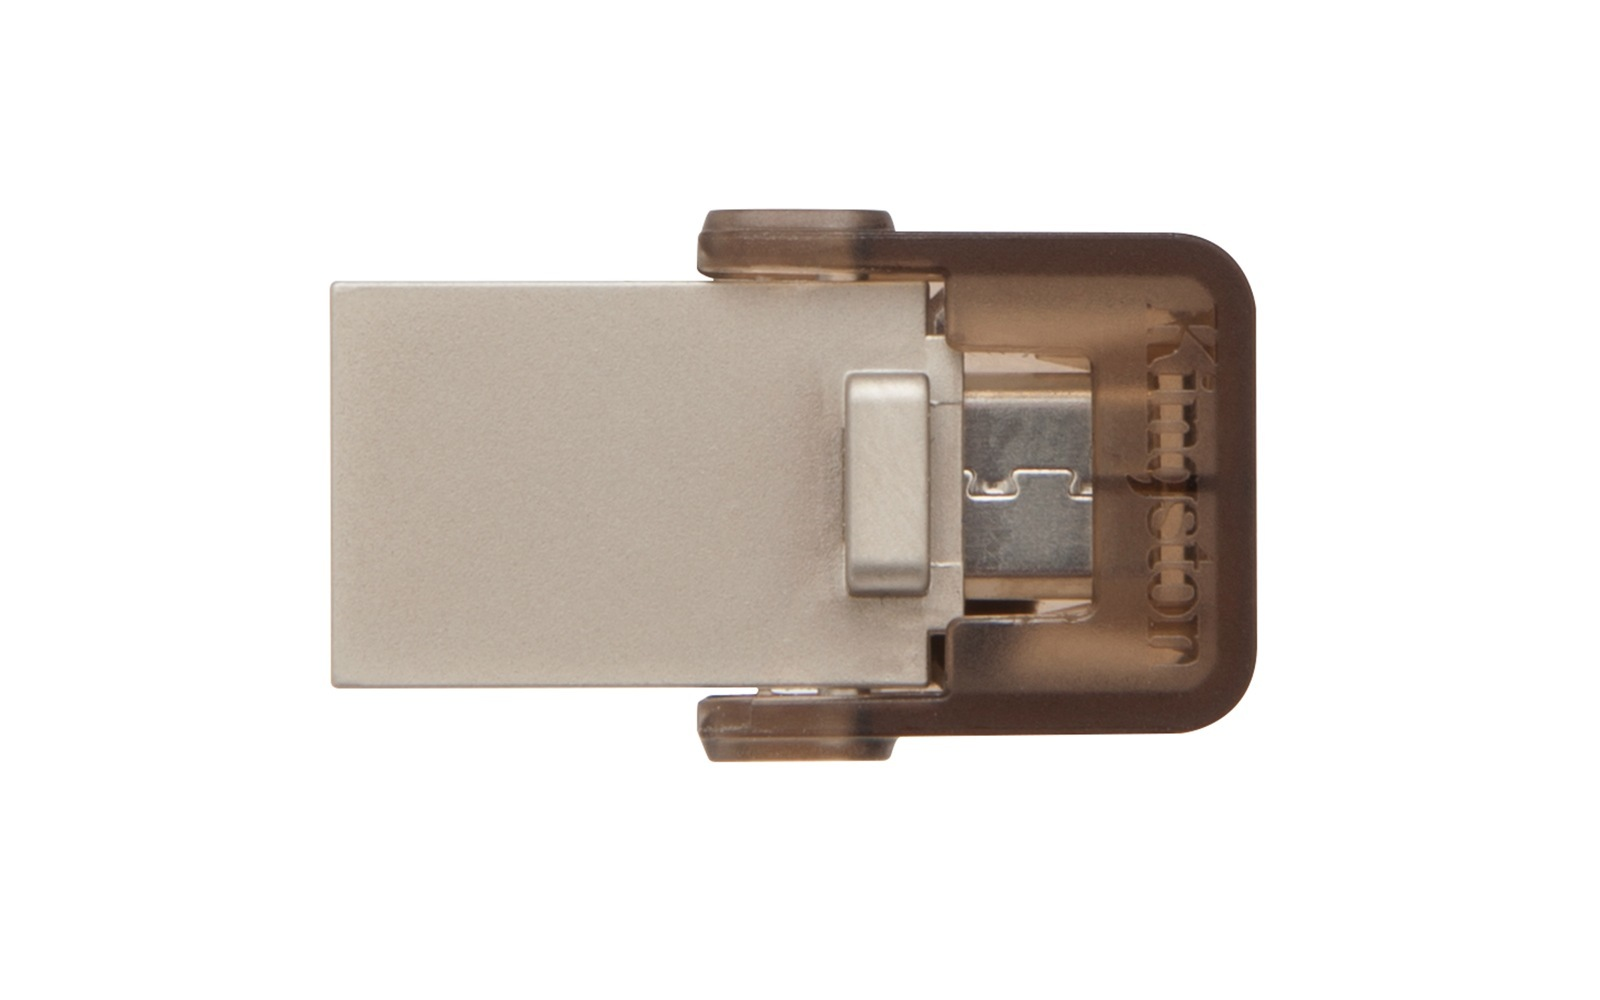 Foto de Kingston microDuo USB (24/27)